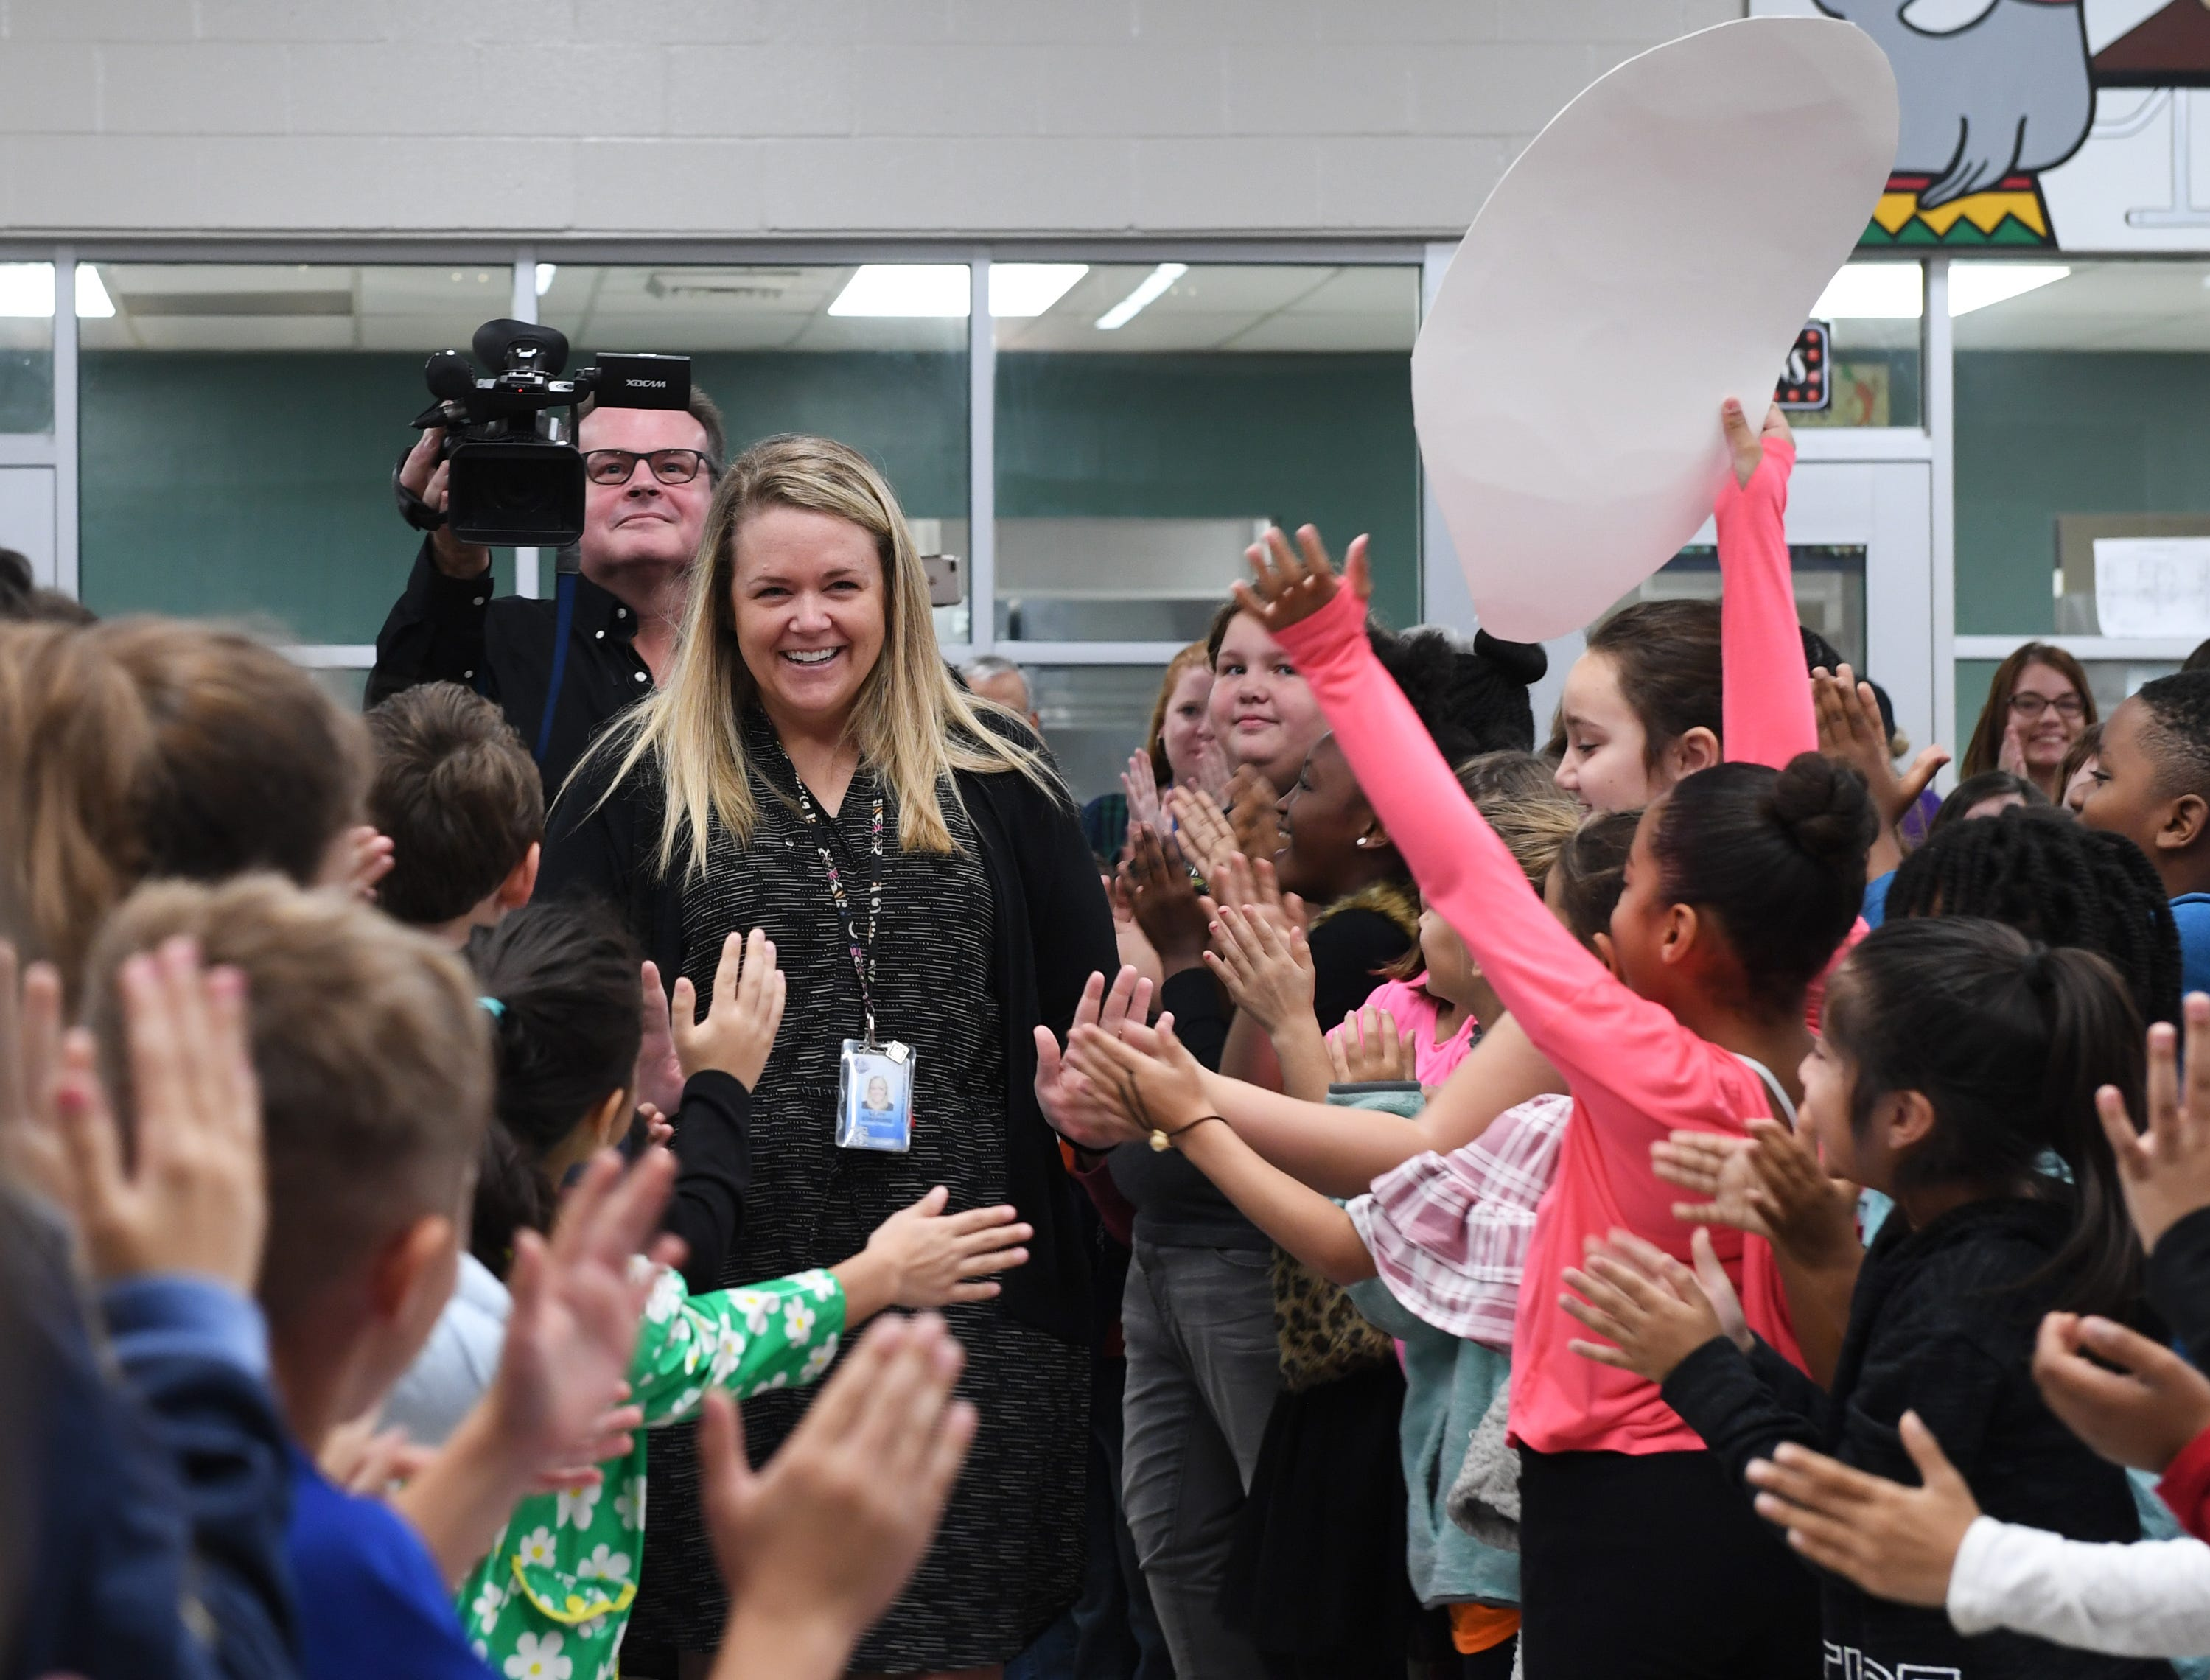 Assistant Principal Leah Stafford enters the cafeteria at Simpsonville Elementary to a crowd of students and faculty Friday Nov, 30, 2018. The crowd was gathered for the surprise announcement that Stafford is the 2019 SC Elementary Assistant Principal of the Year.